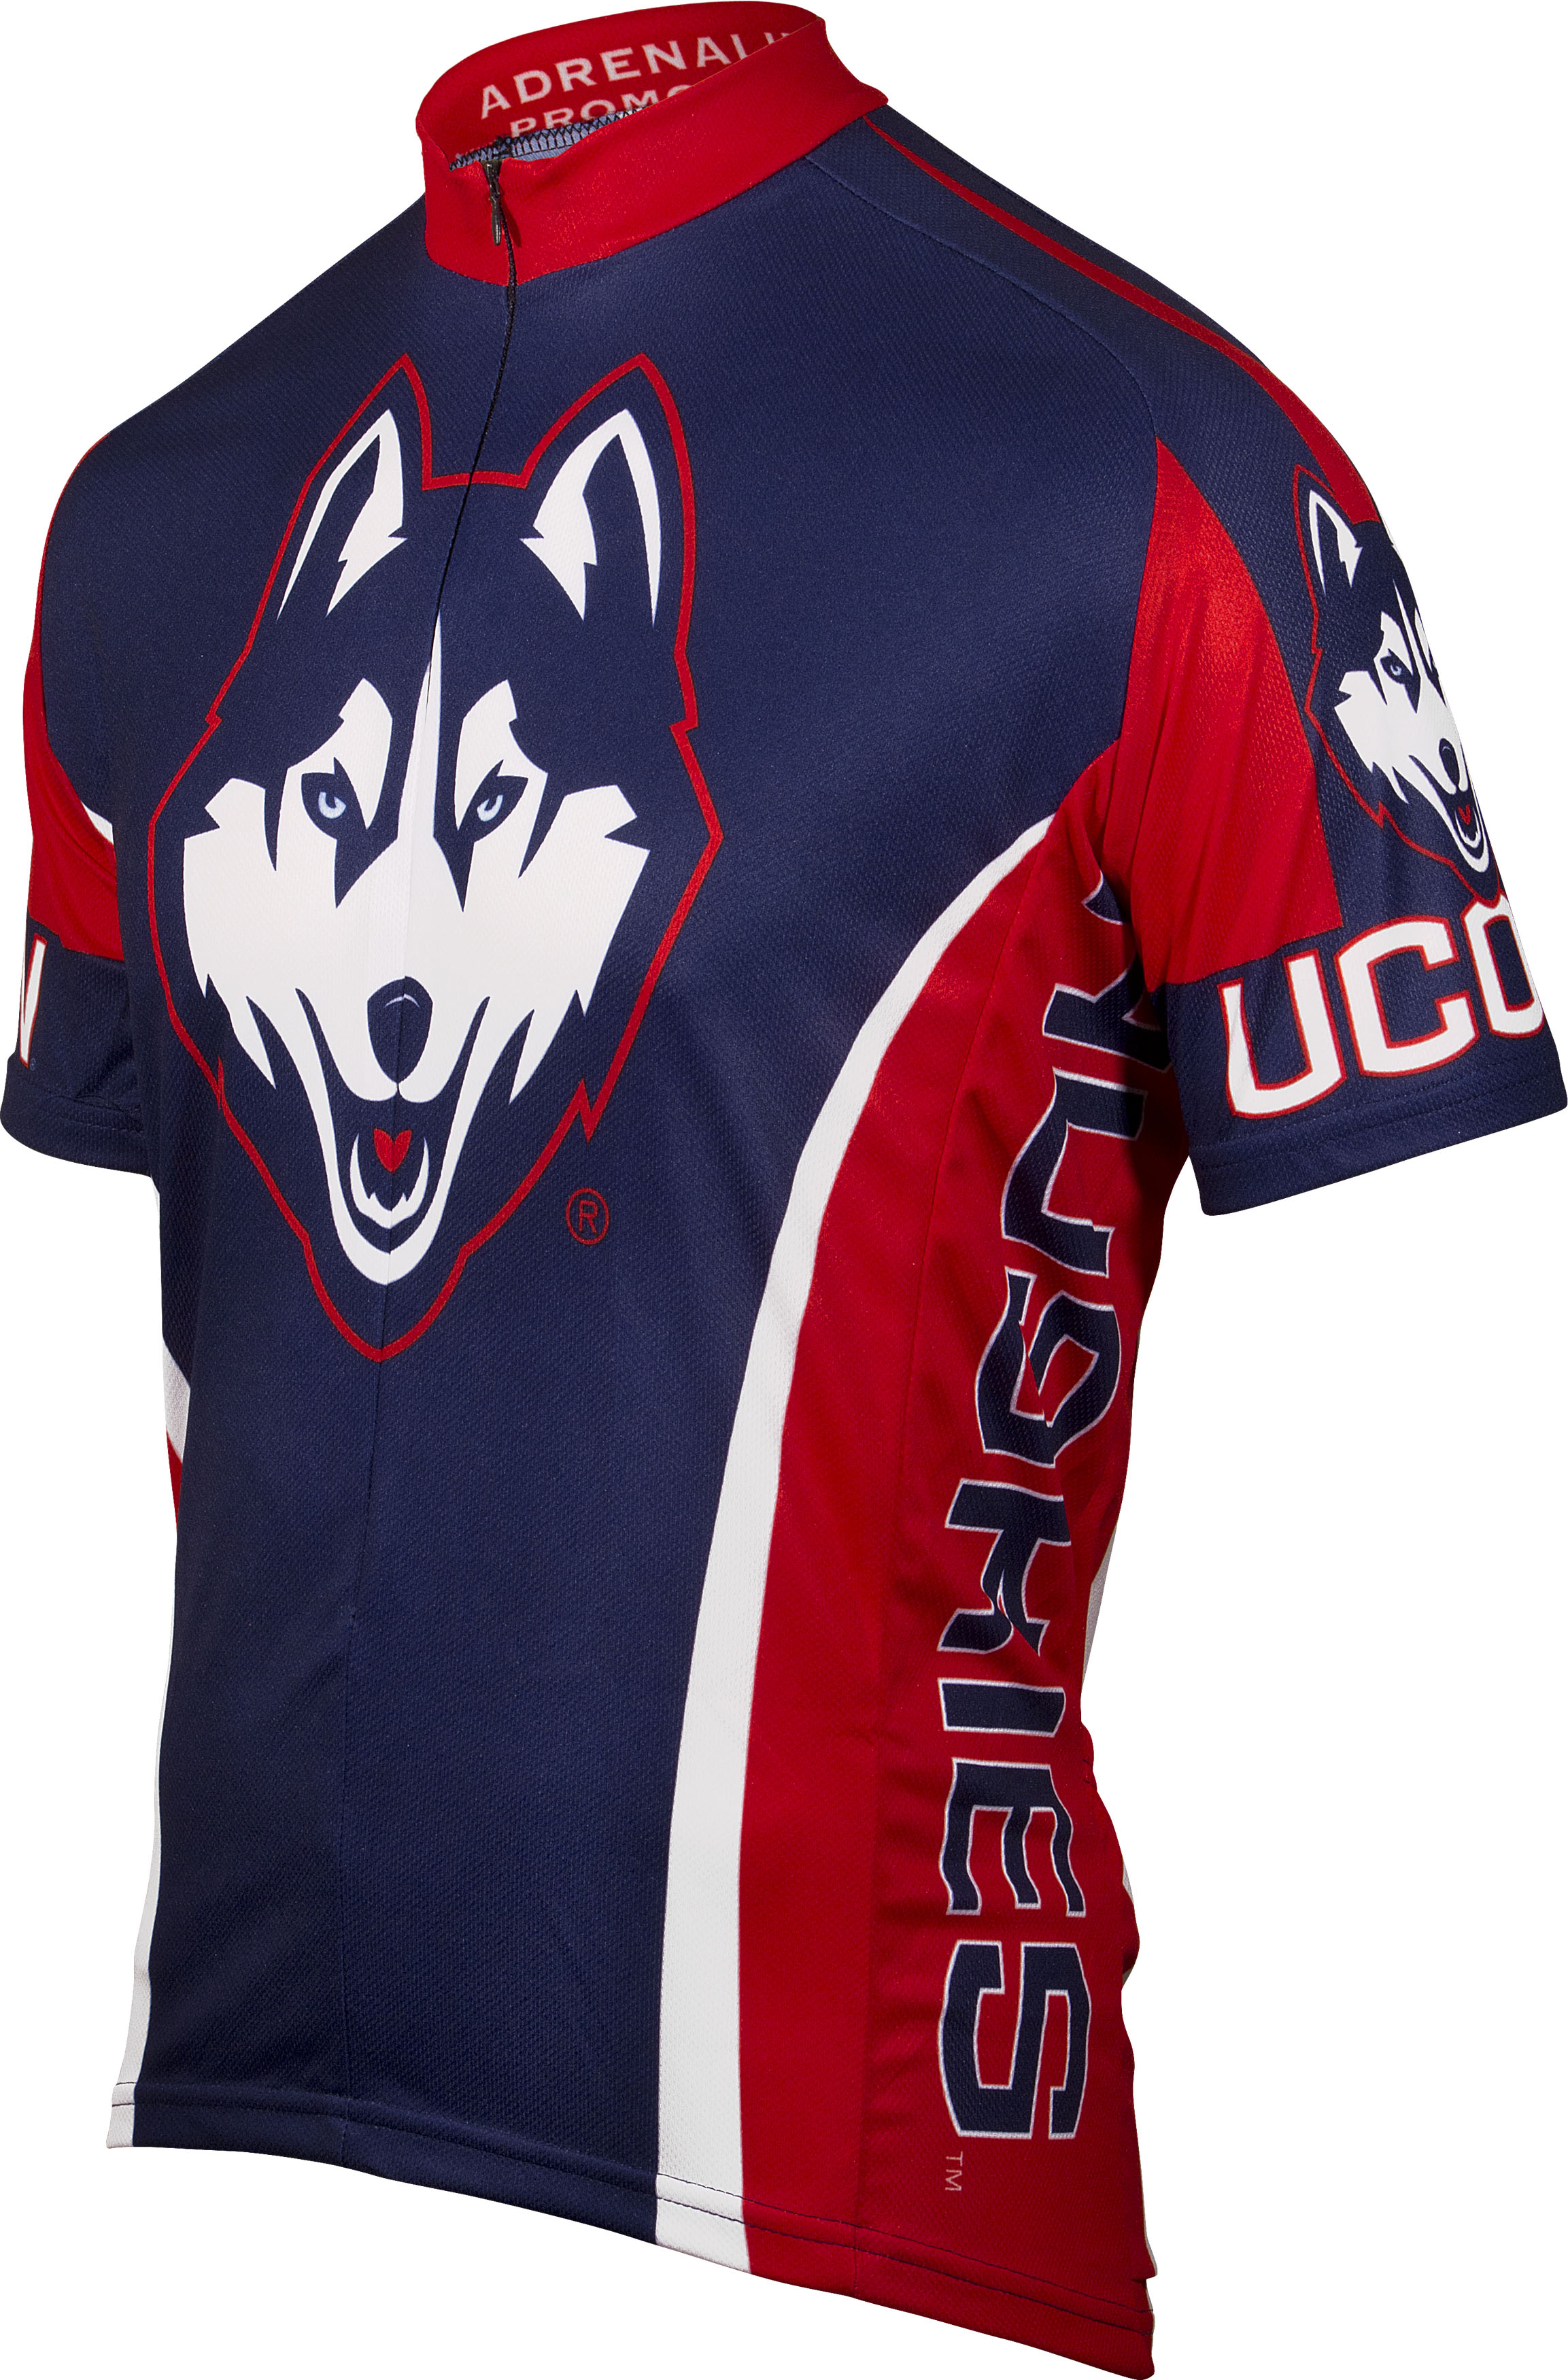 University of Connecticut UCONN Cycling Jersey Medium